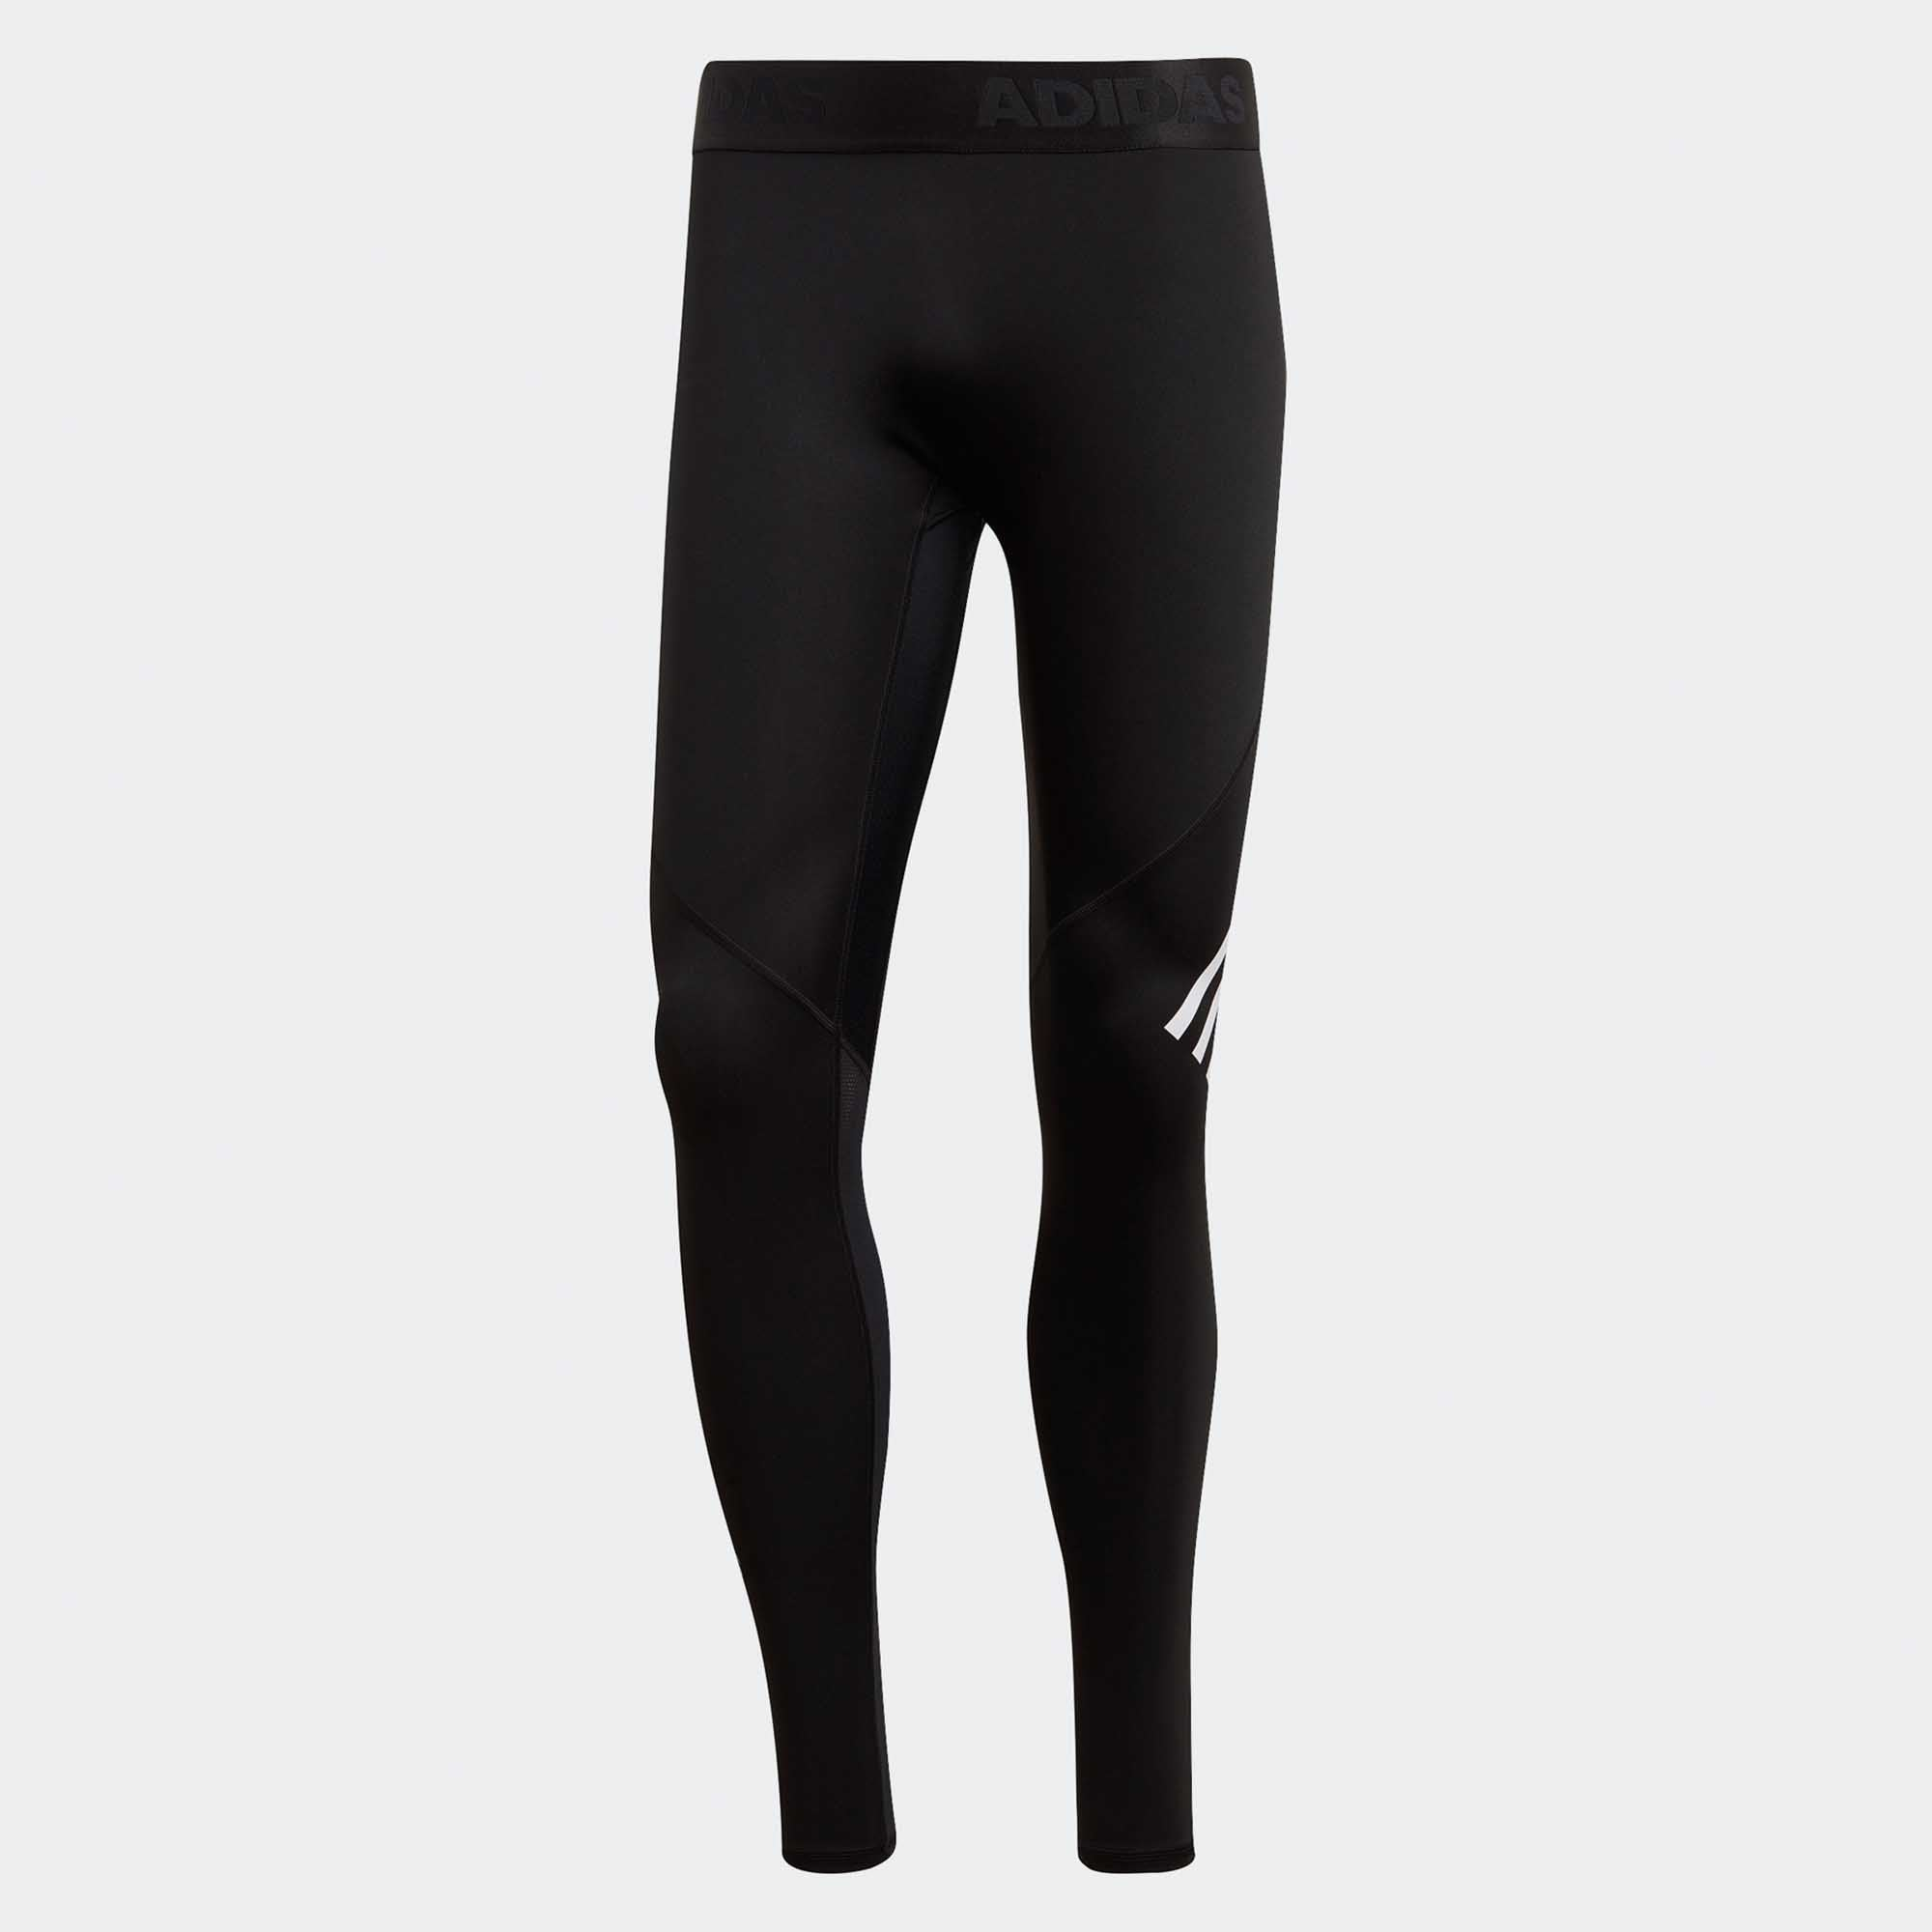 fb5ab1347ad68 Buy adidas Men Alphaskin Sport + Long 3-Stripes Tights Online in Singapore  | Royal Sporting House